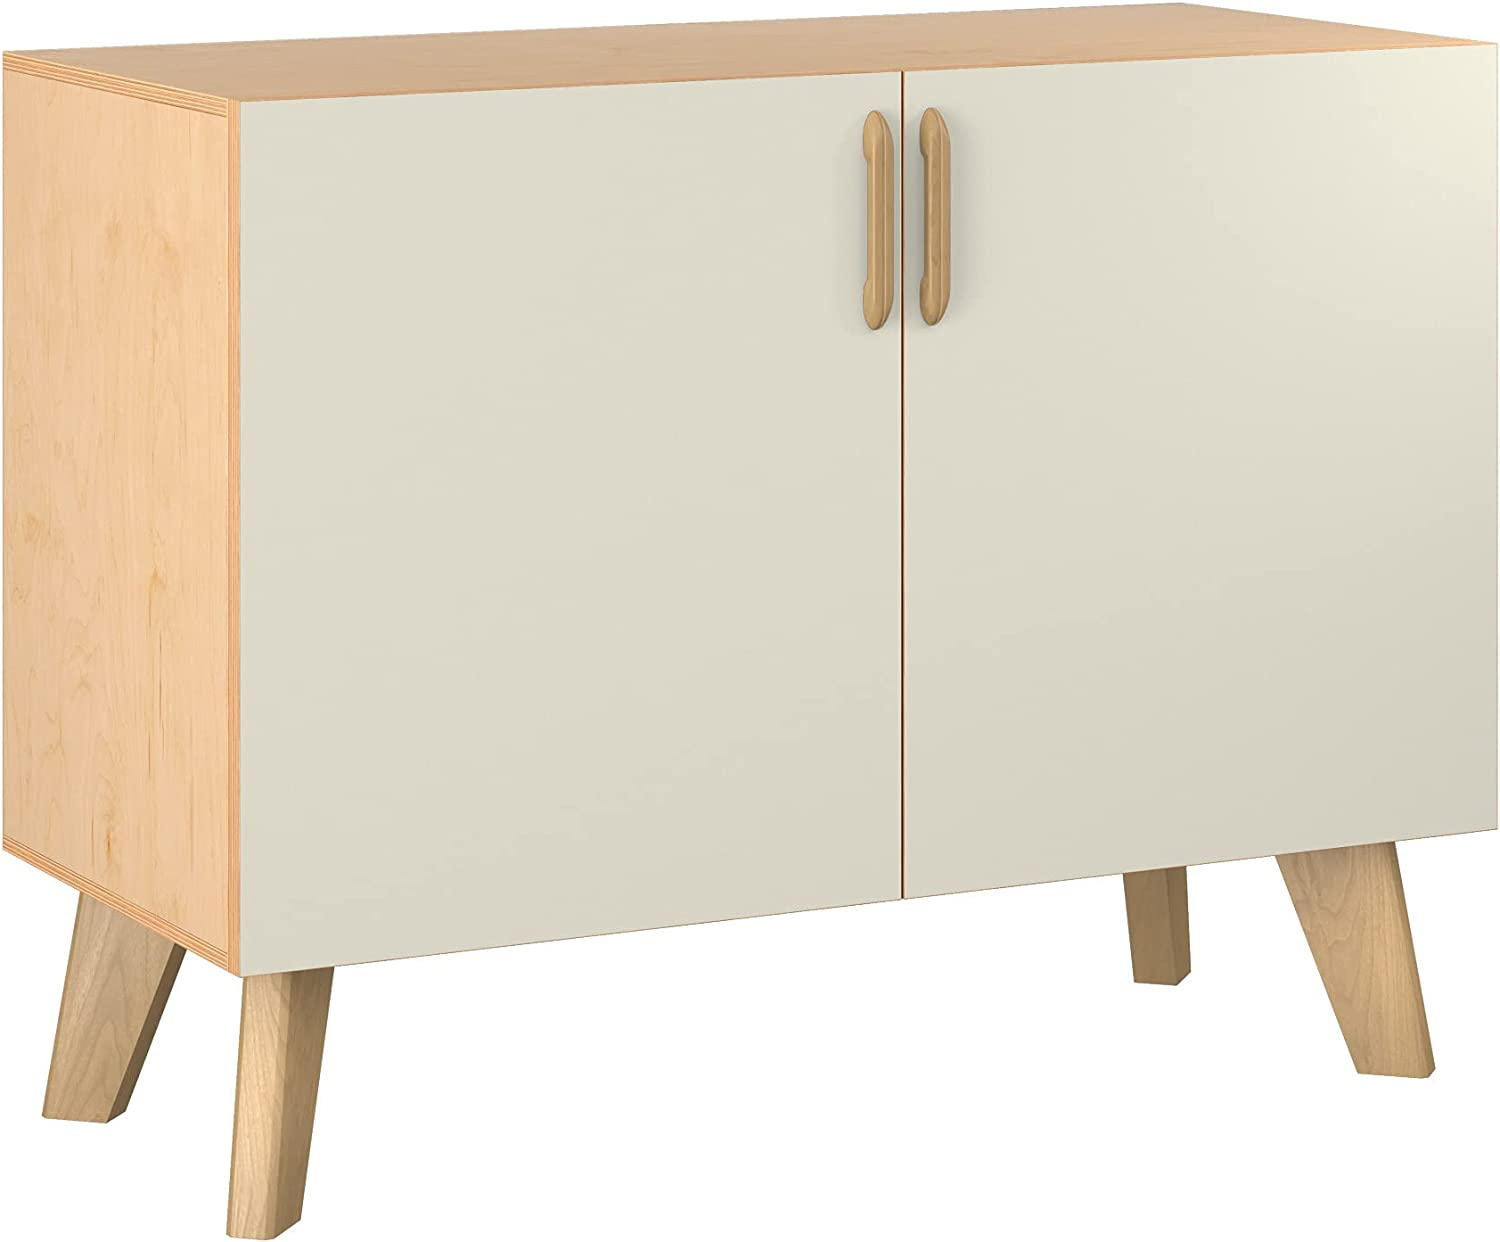 Poppy Special price Credenza - security Natural Sadie Design Base Colors 11 5 in Styl